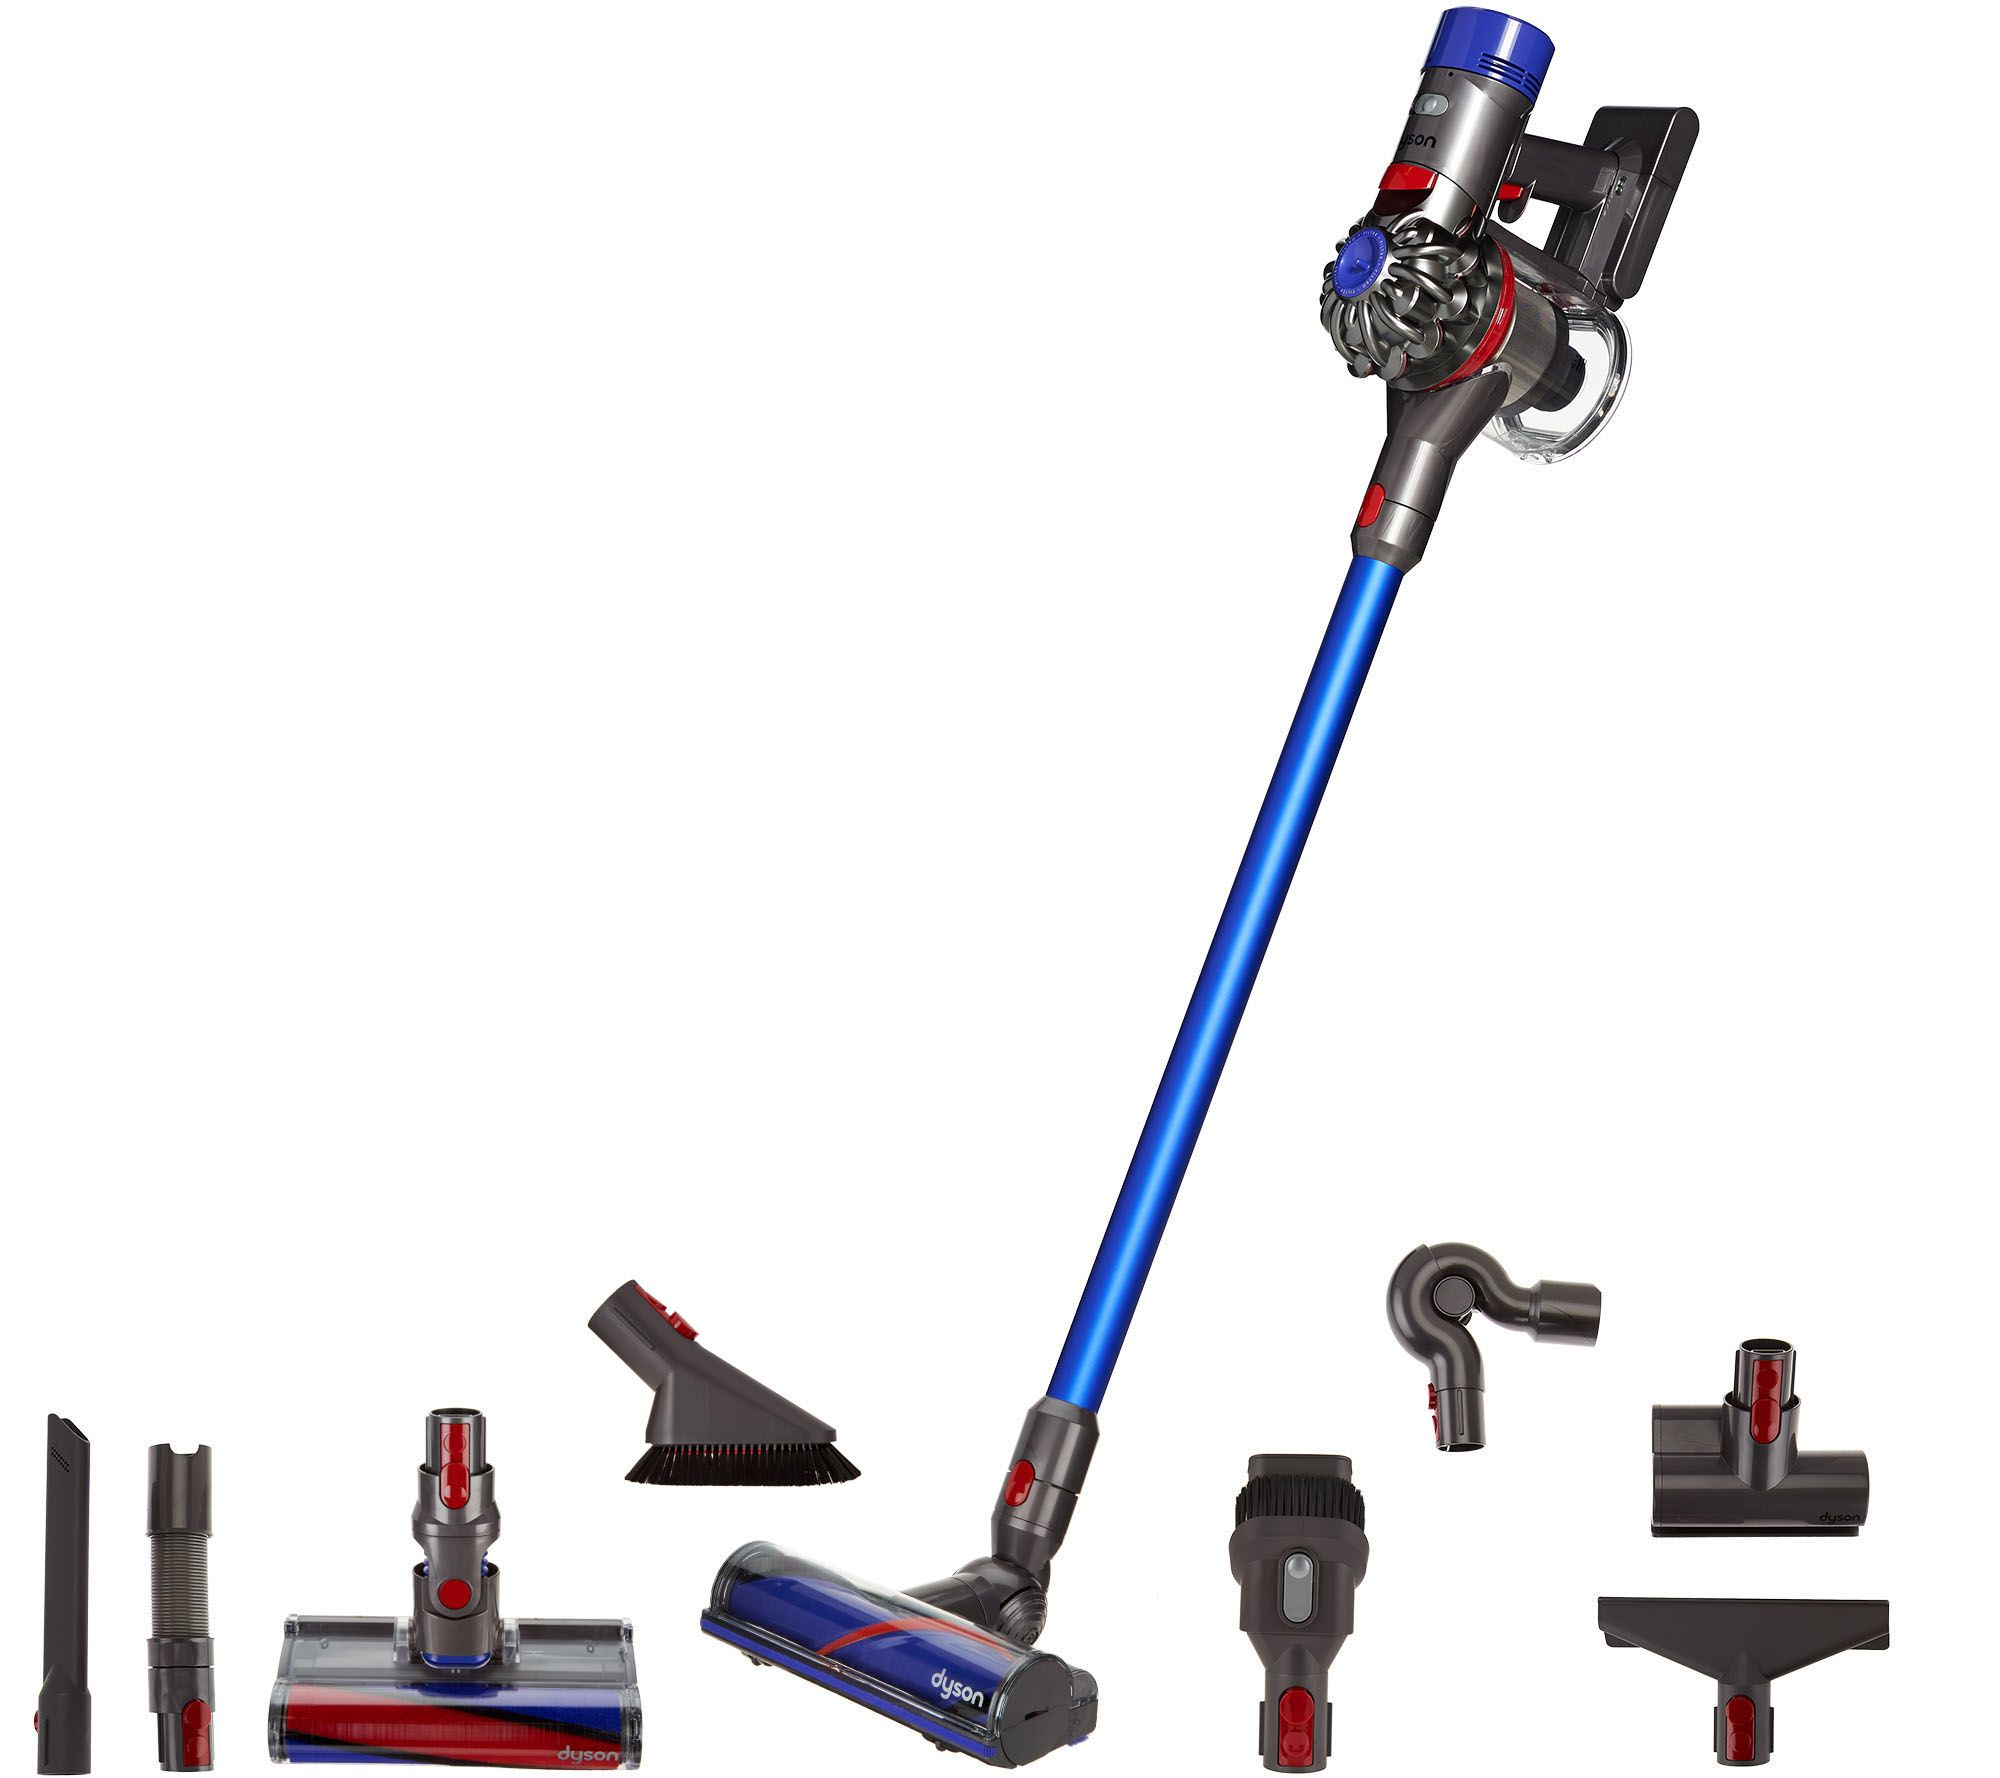 Aspirateur Dyson V8 Absolute Dyson V8 Absolute Cordless Vacuum With 8 Tools Hepa Filtration Qvc